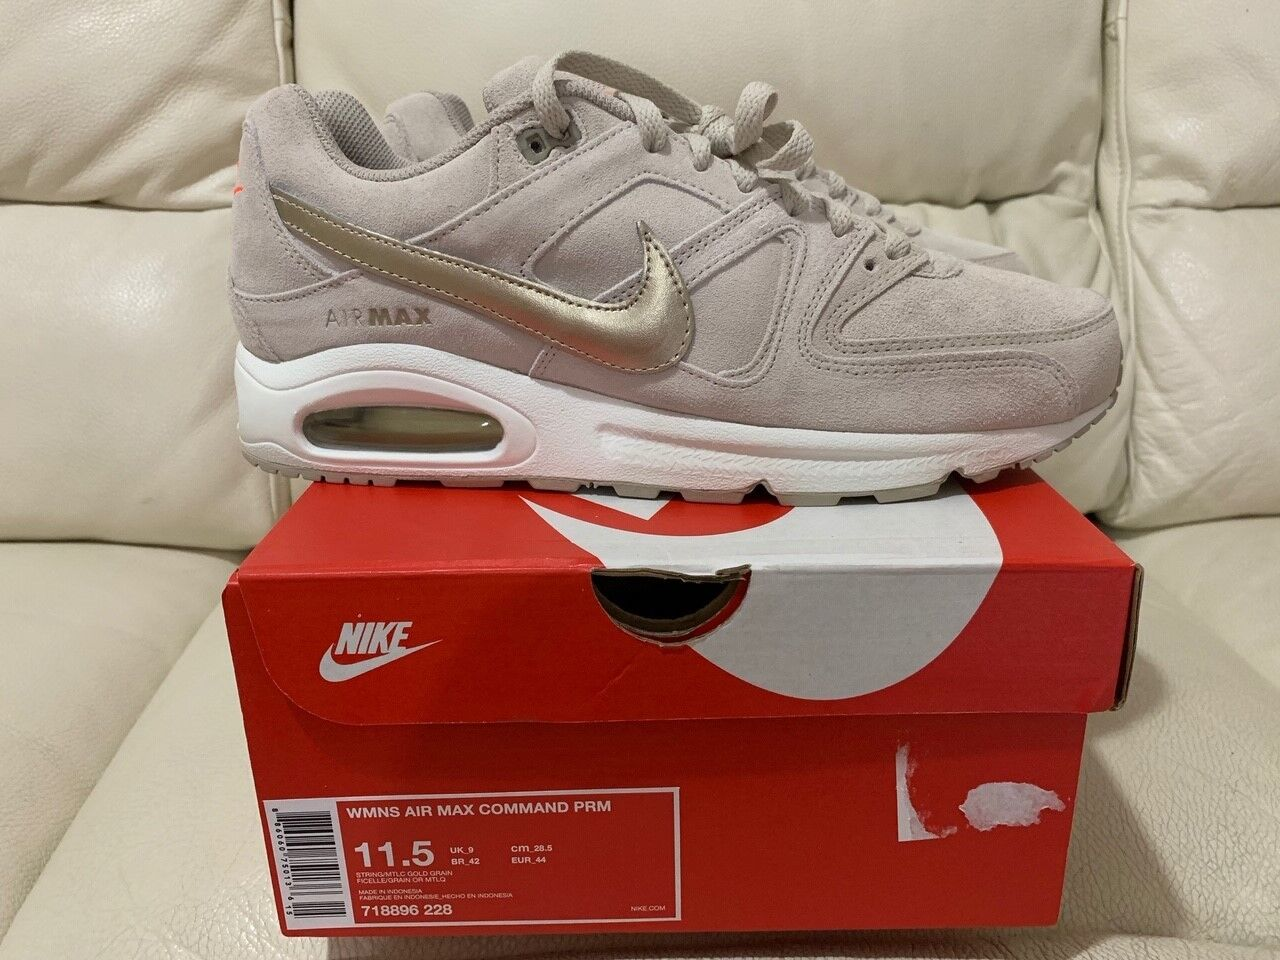 Nike Femme Air Max Comhommed Prm Tailles UK 8 9 9.5 Neuf